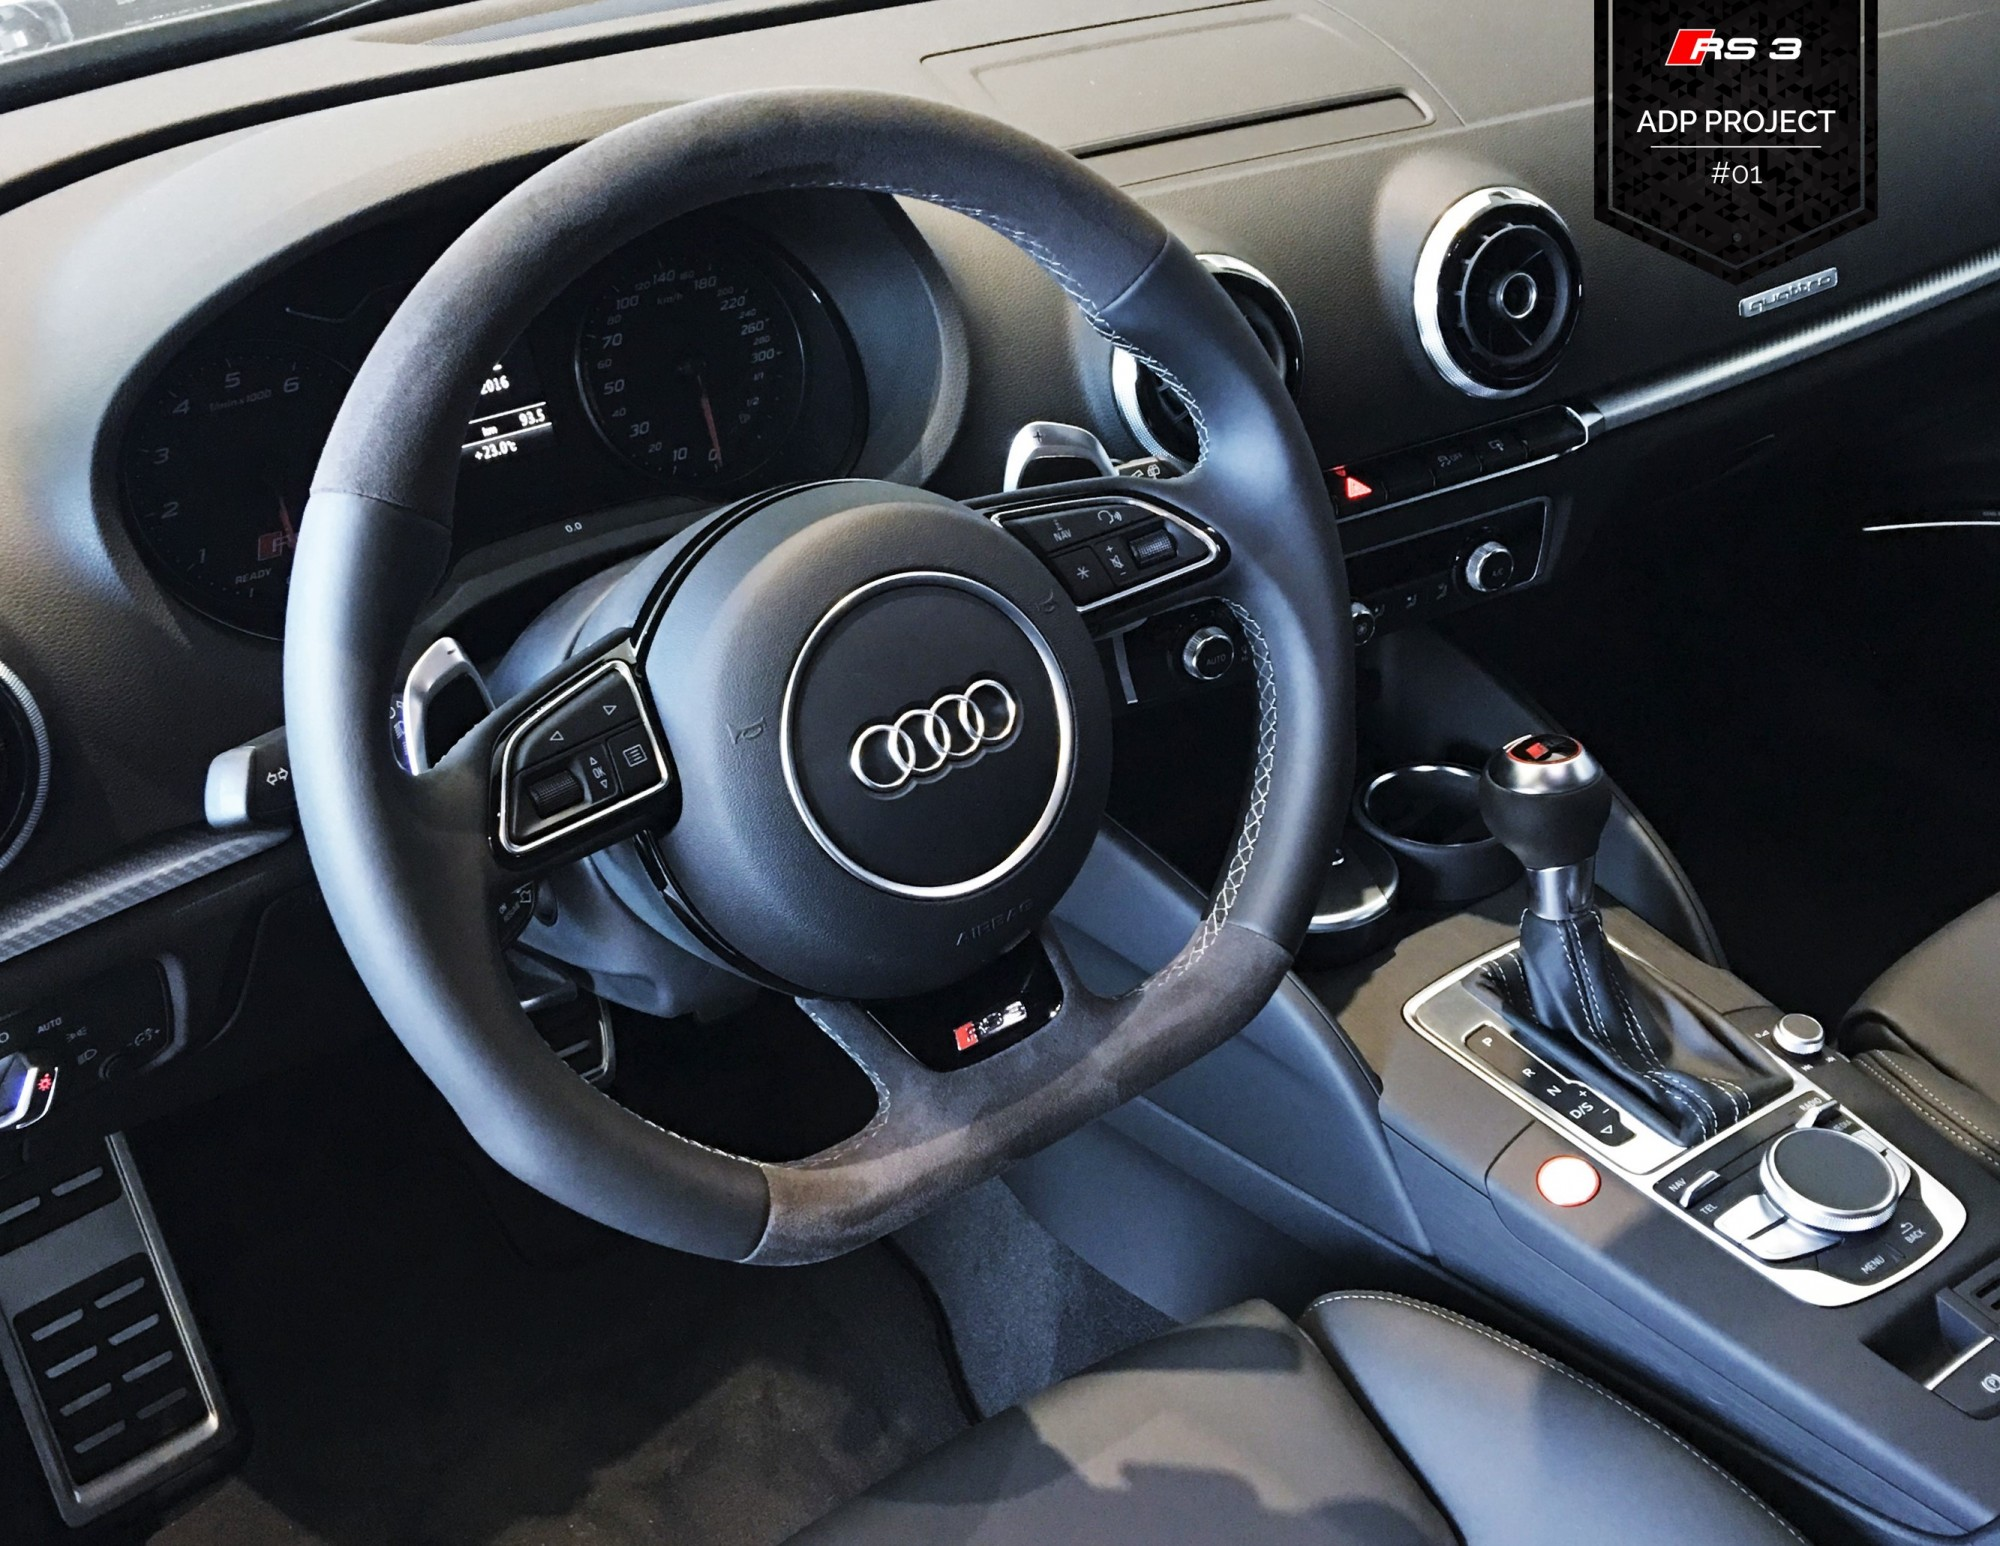 audi rs3 adp project 01 r ception rodage actualites reprogrammation auto sur. Black Bedroom Furniture Sets. Home Design Ideas